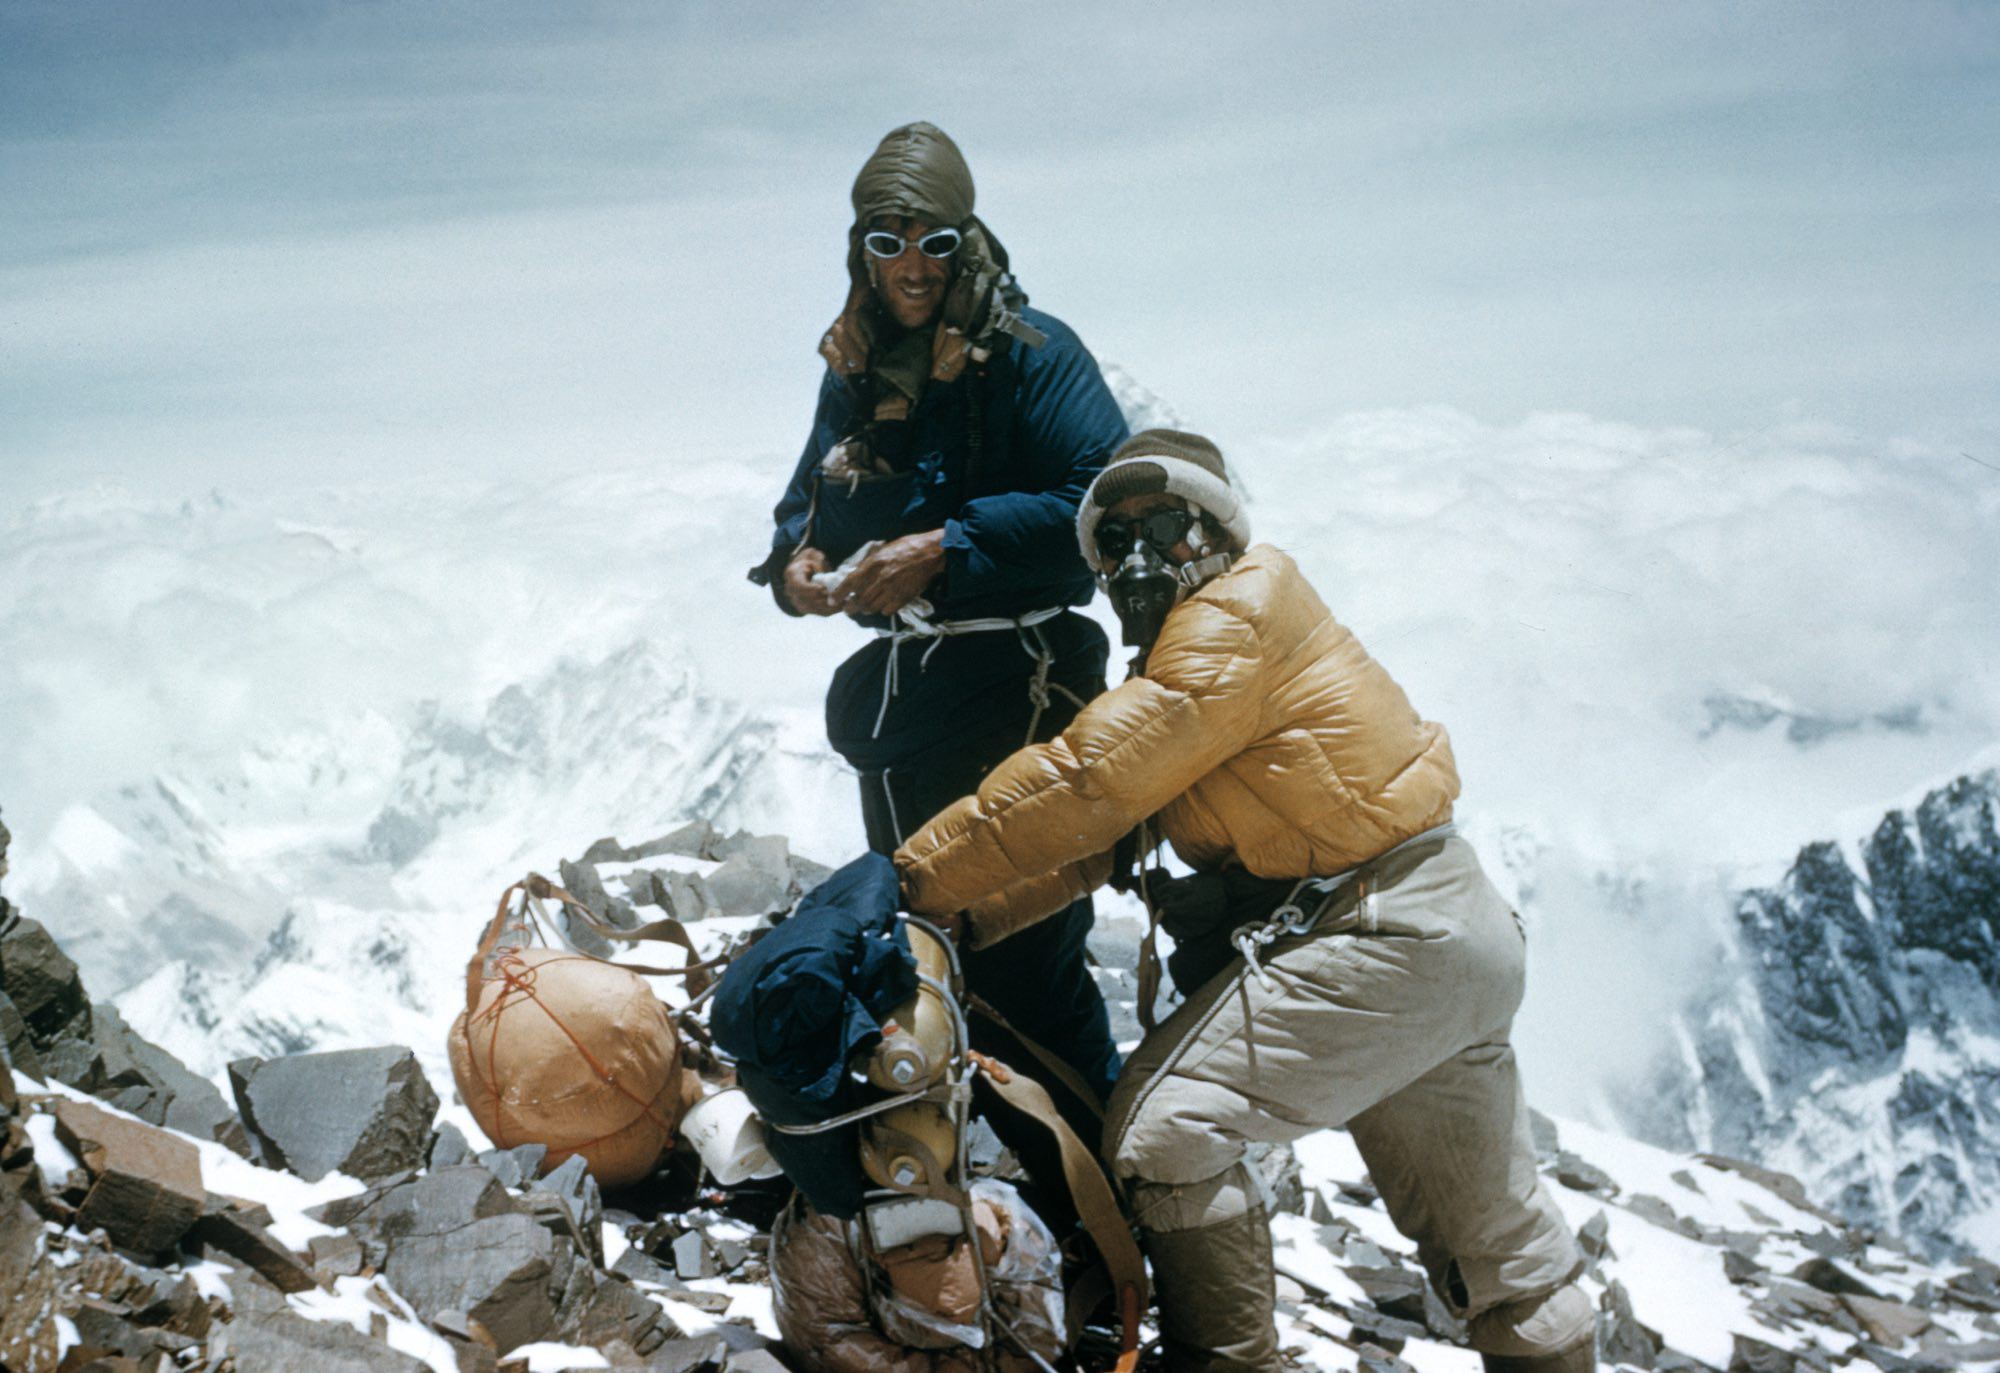 Sir Edmund Hillary and TenzingNorgay climbing Mount Everestin 1953